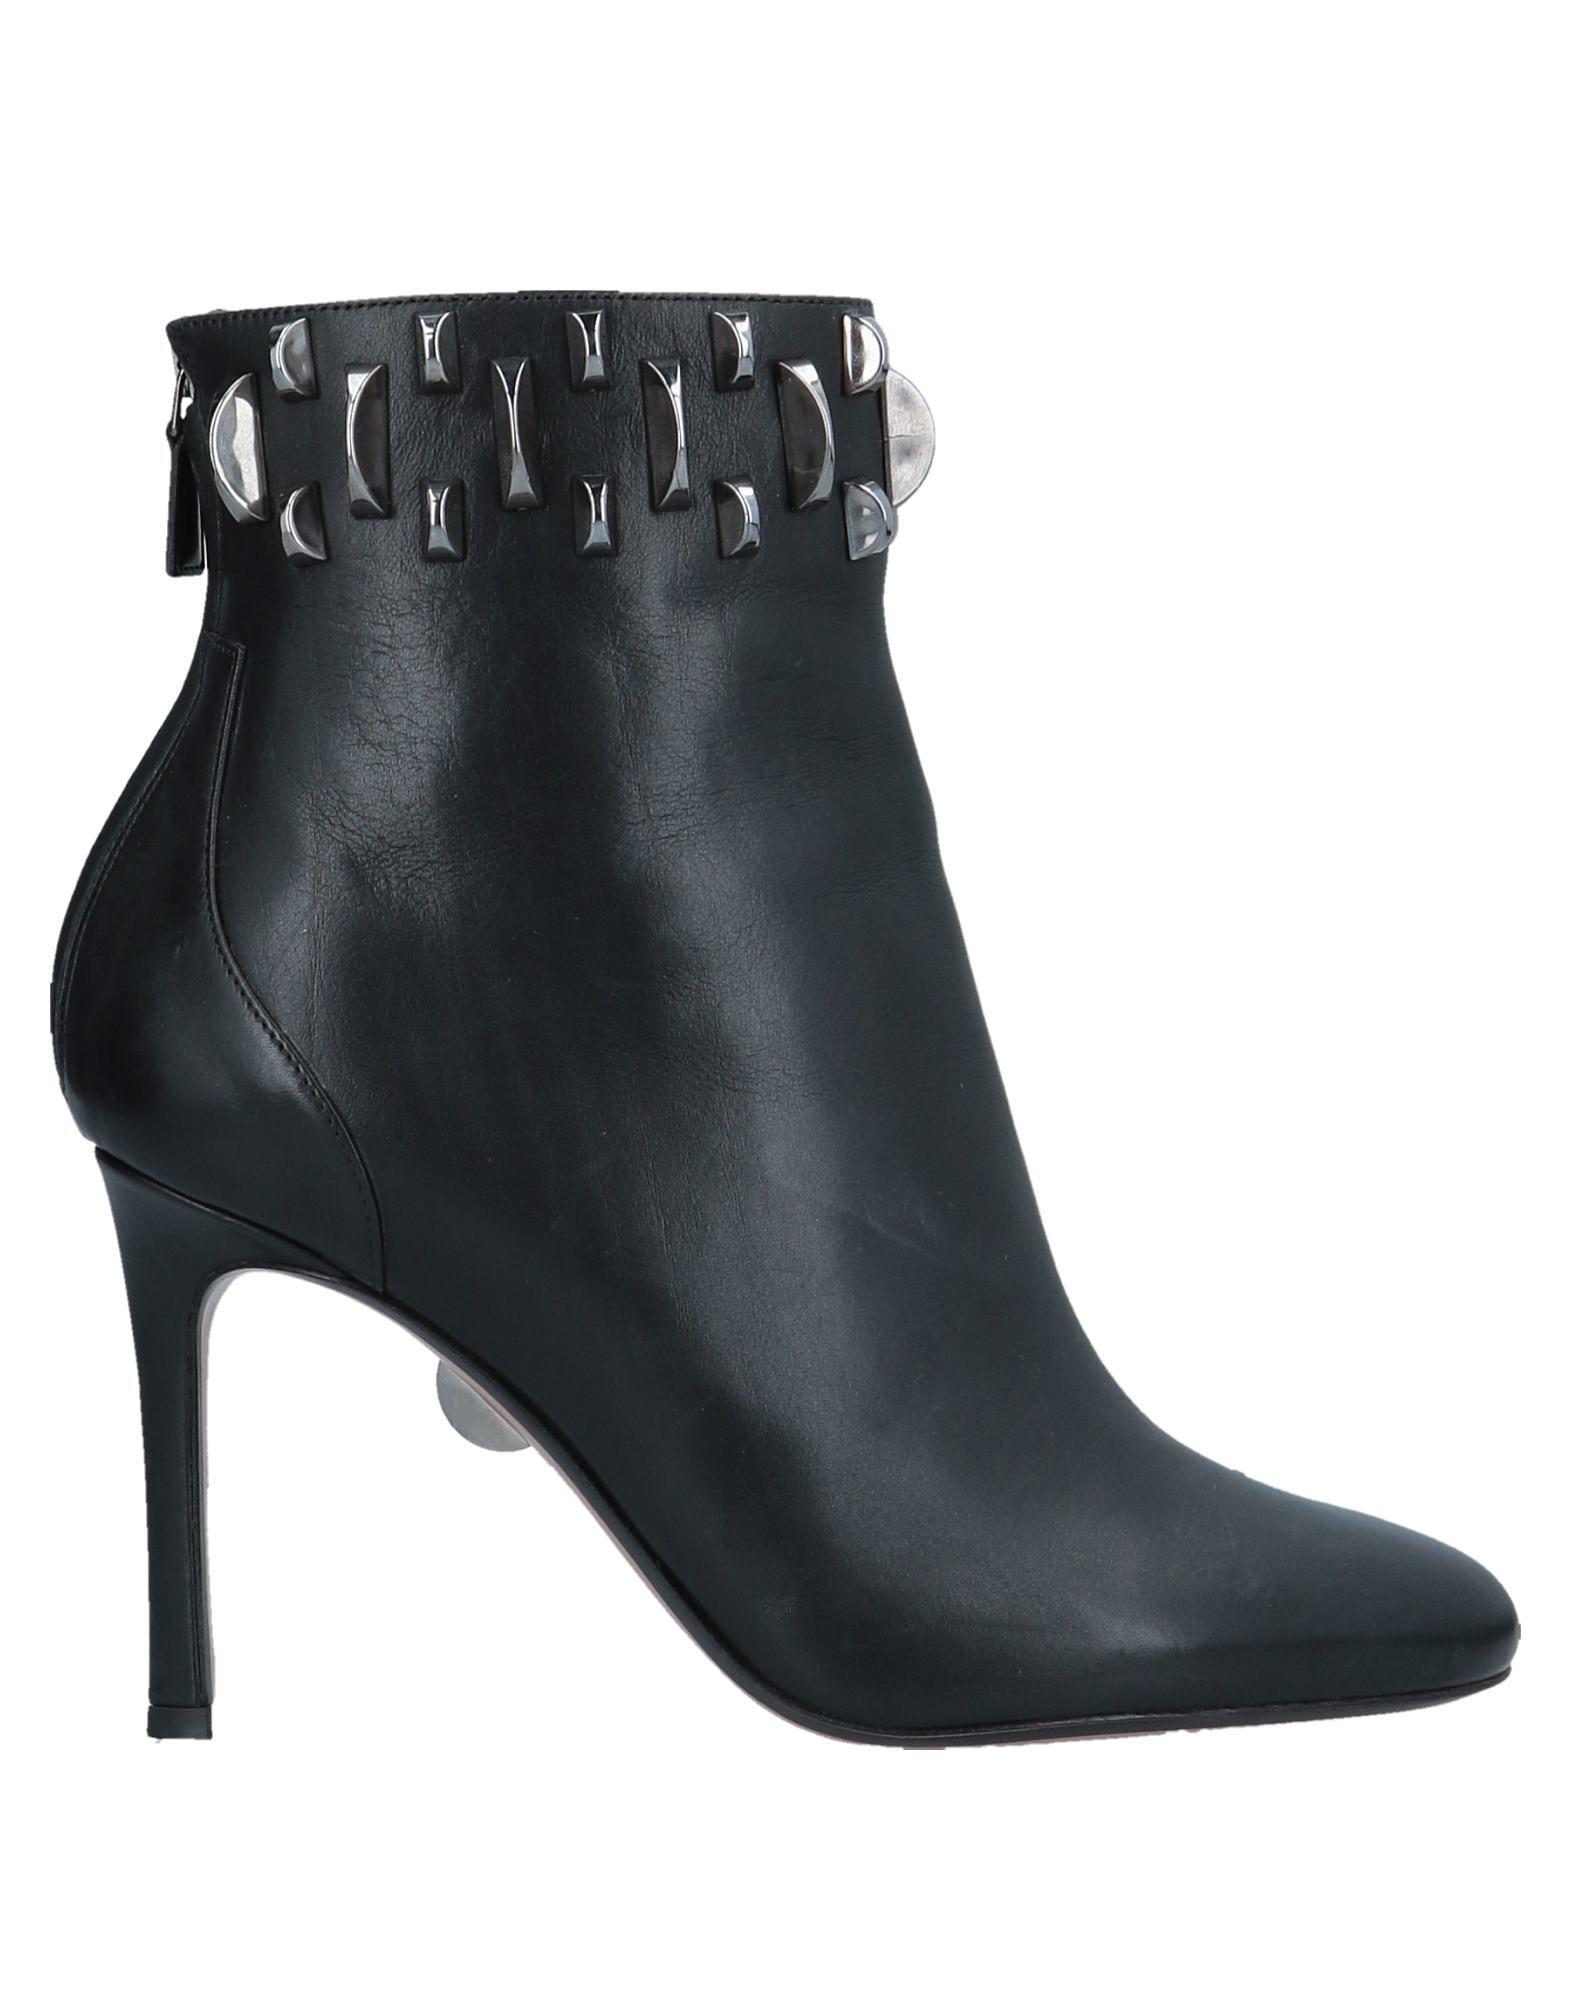 566a650b226 Samuele Failli Ankle Boots in Black - Lyst